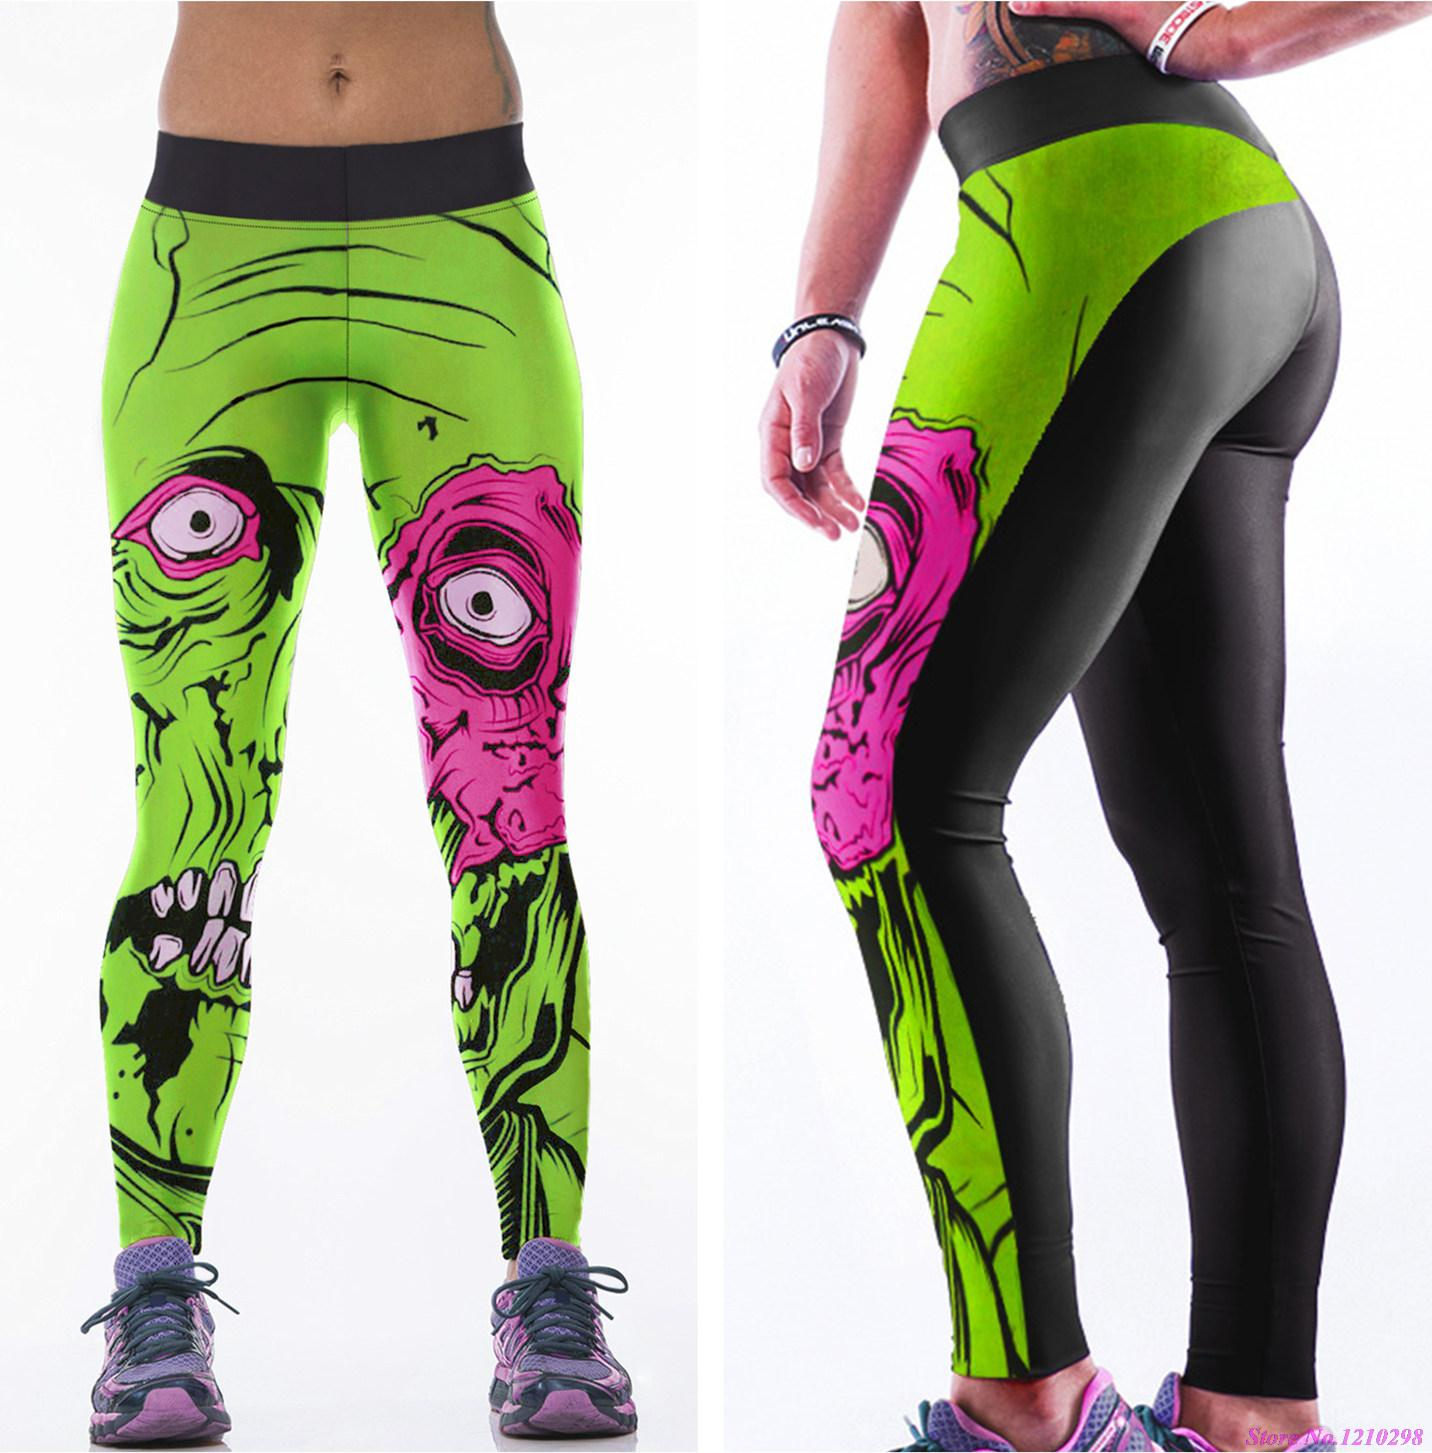 Jogging Vs Running Speed Plants Vs Zombies Yoga Pants Green Women Sports Running